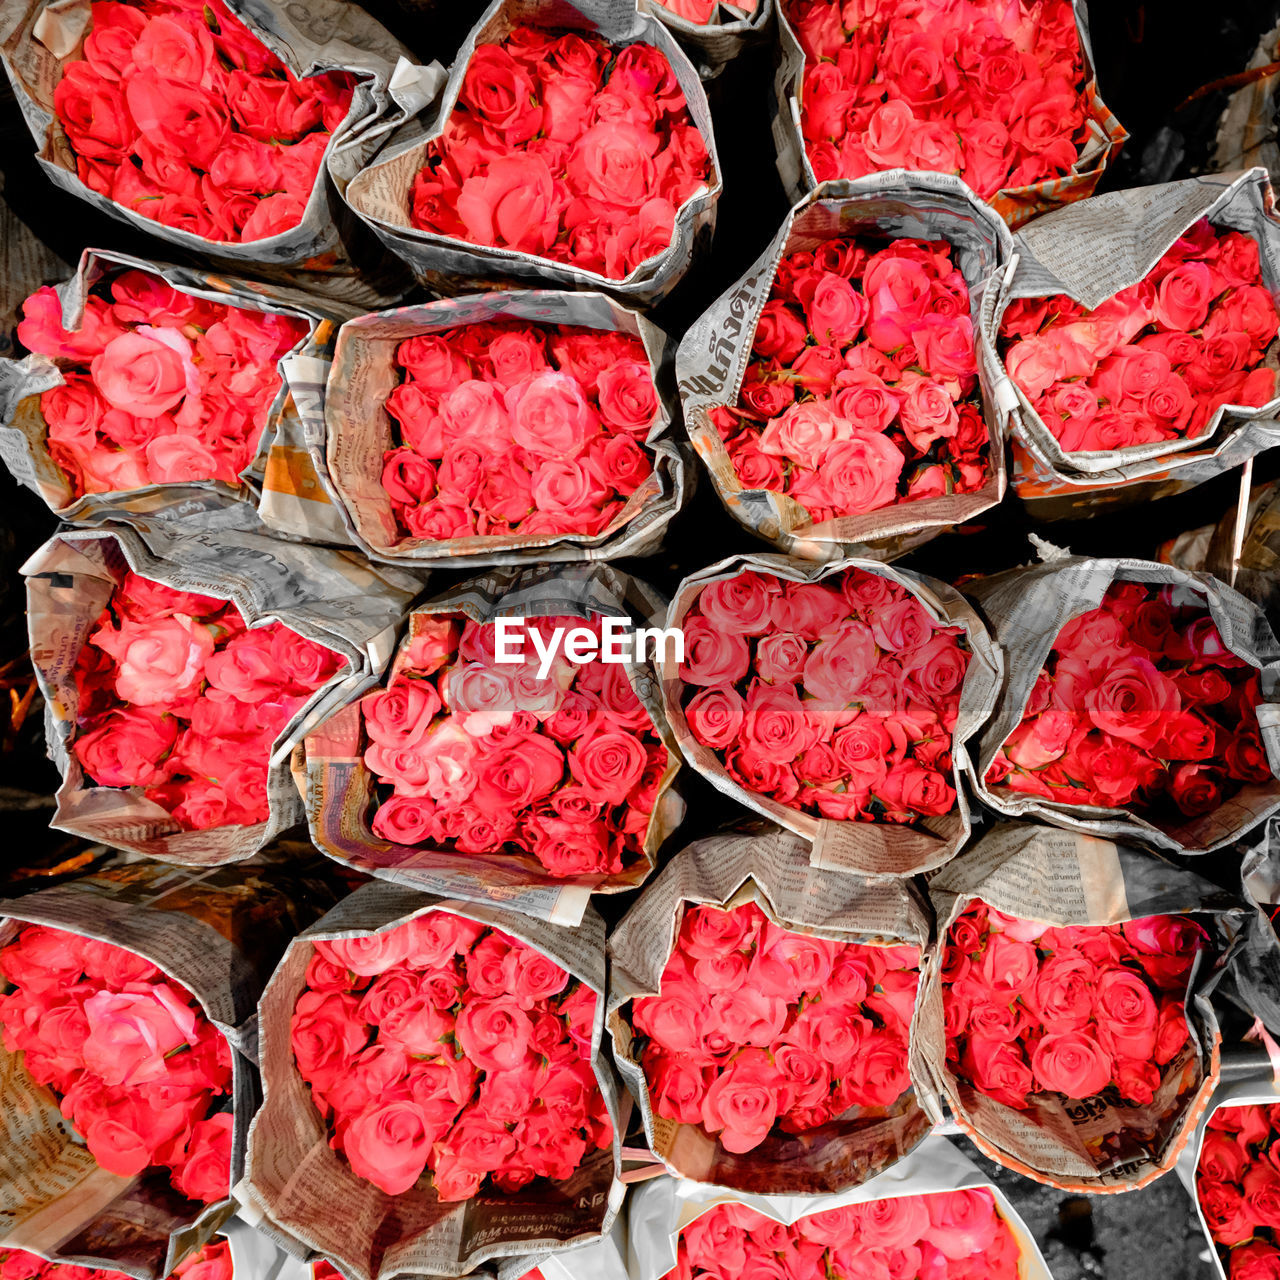 red, freshness, food and drink, full frame, retail, for sale, food, high angle view, no people, market, flower, backgrounds, abundance, arrangement, flowering plant, directly above, plant, rose, beauty in nature, still life, retail display, flower market